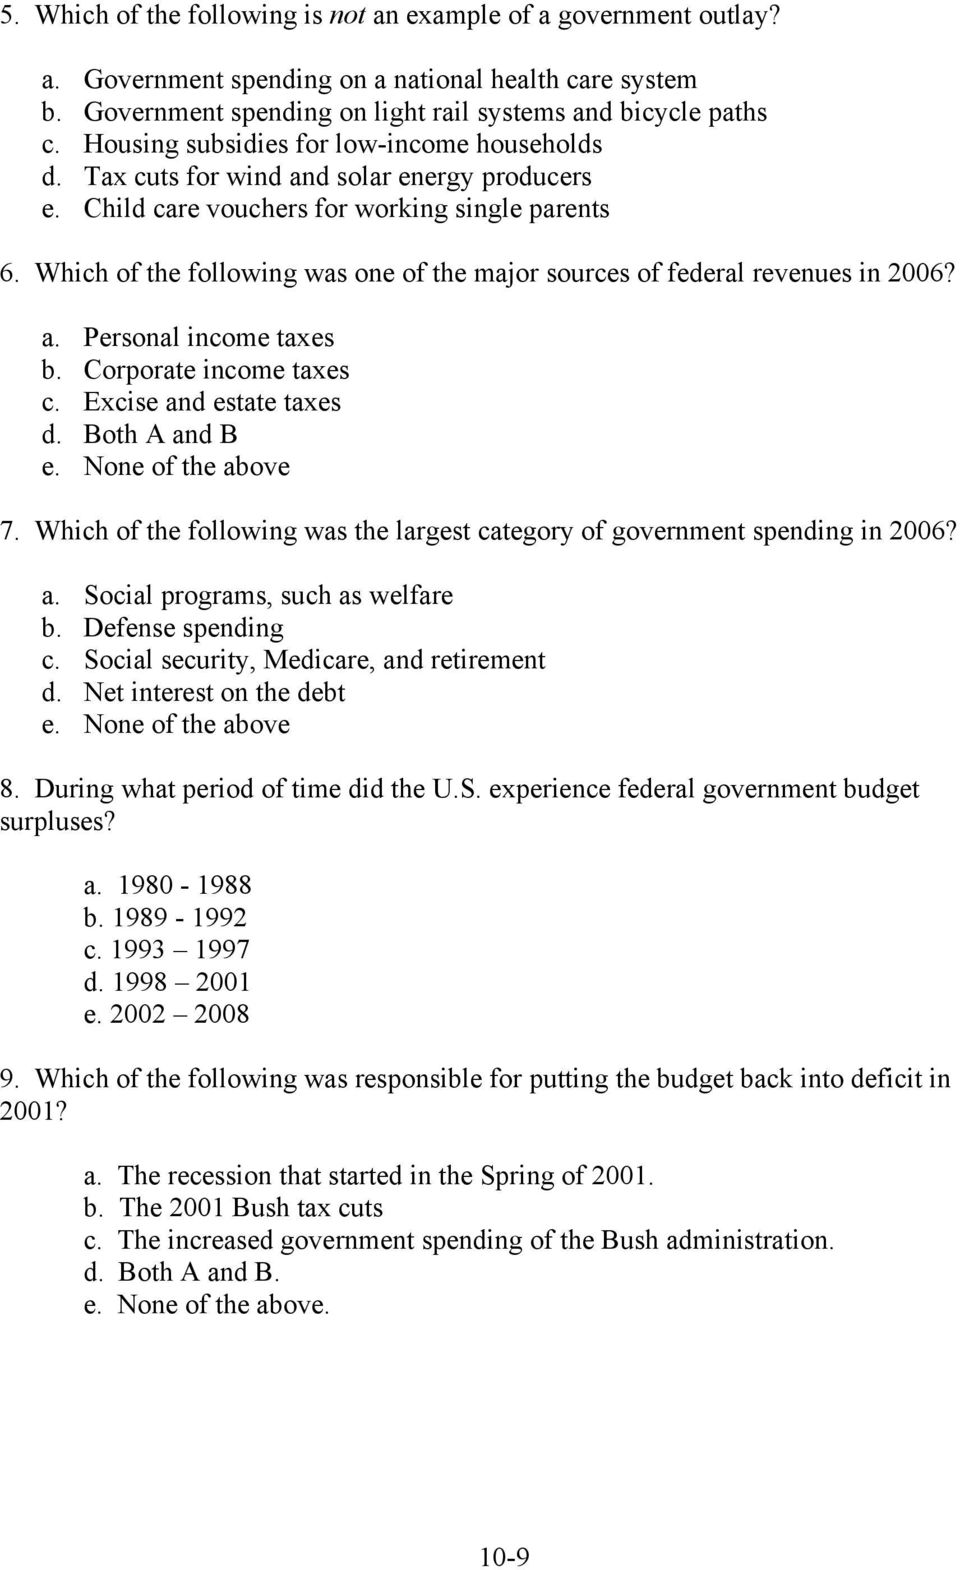 Which of the following was one of the major sources of federal revenues in 2006? a. Personal income taxes b. Corporate income taxes c. Excise and estate taxes d. Both A and B e. None of the above 7.